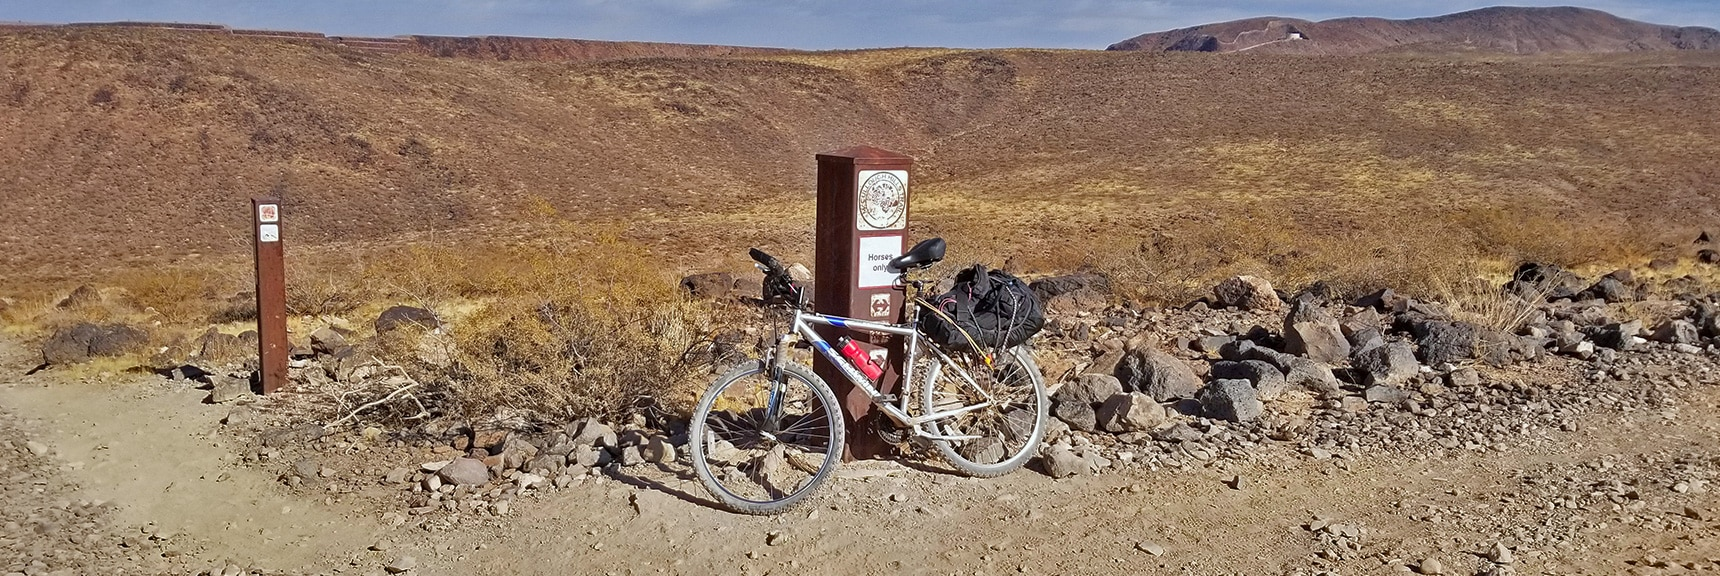 Horse Trail Crossing on the McCullough Hills Trail   McCullough Hills Trail in Sloan Canyon National Conservation Area, Nevada